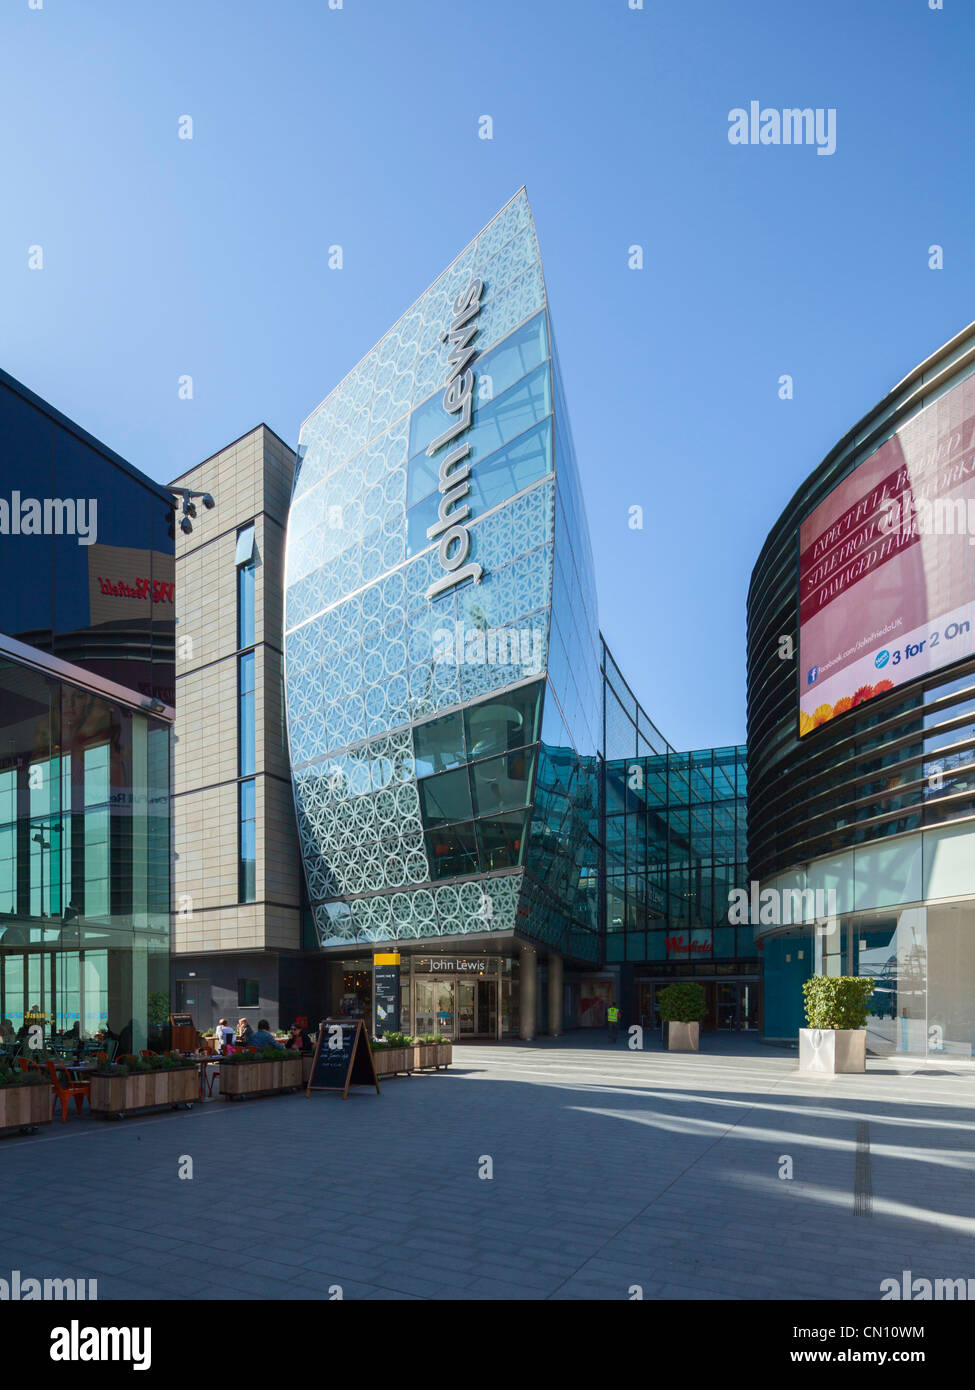 Westfield Stratford City adjacent to Olympic Park, London, UK, 26th March 2012 - Stock Image